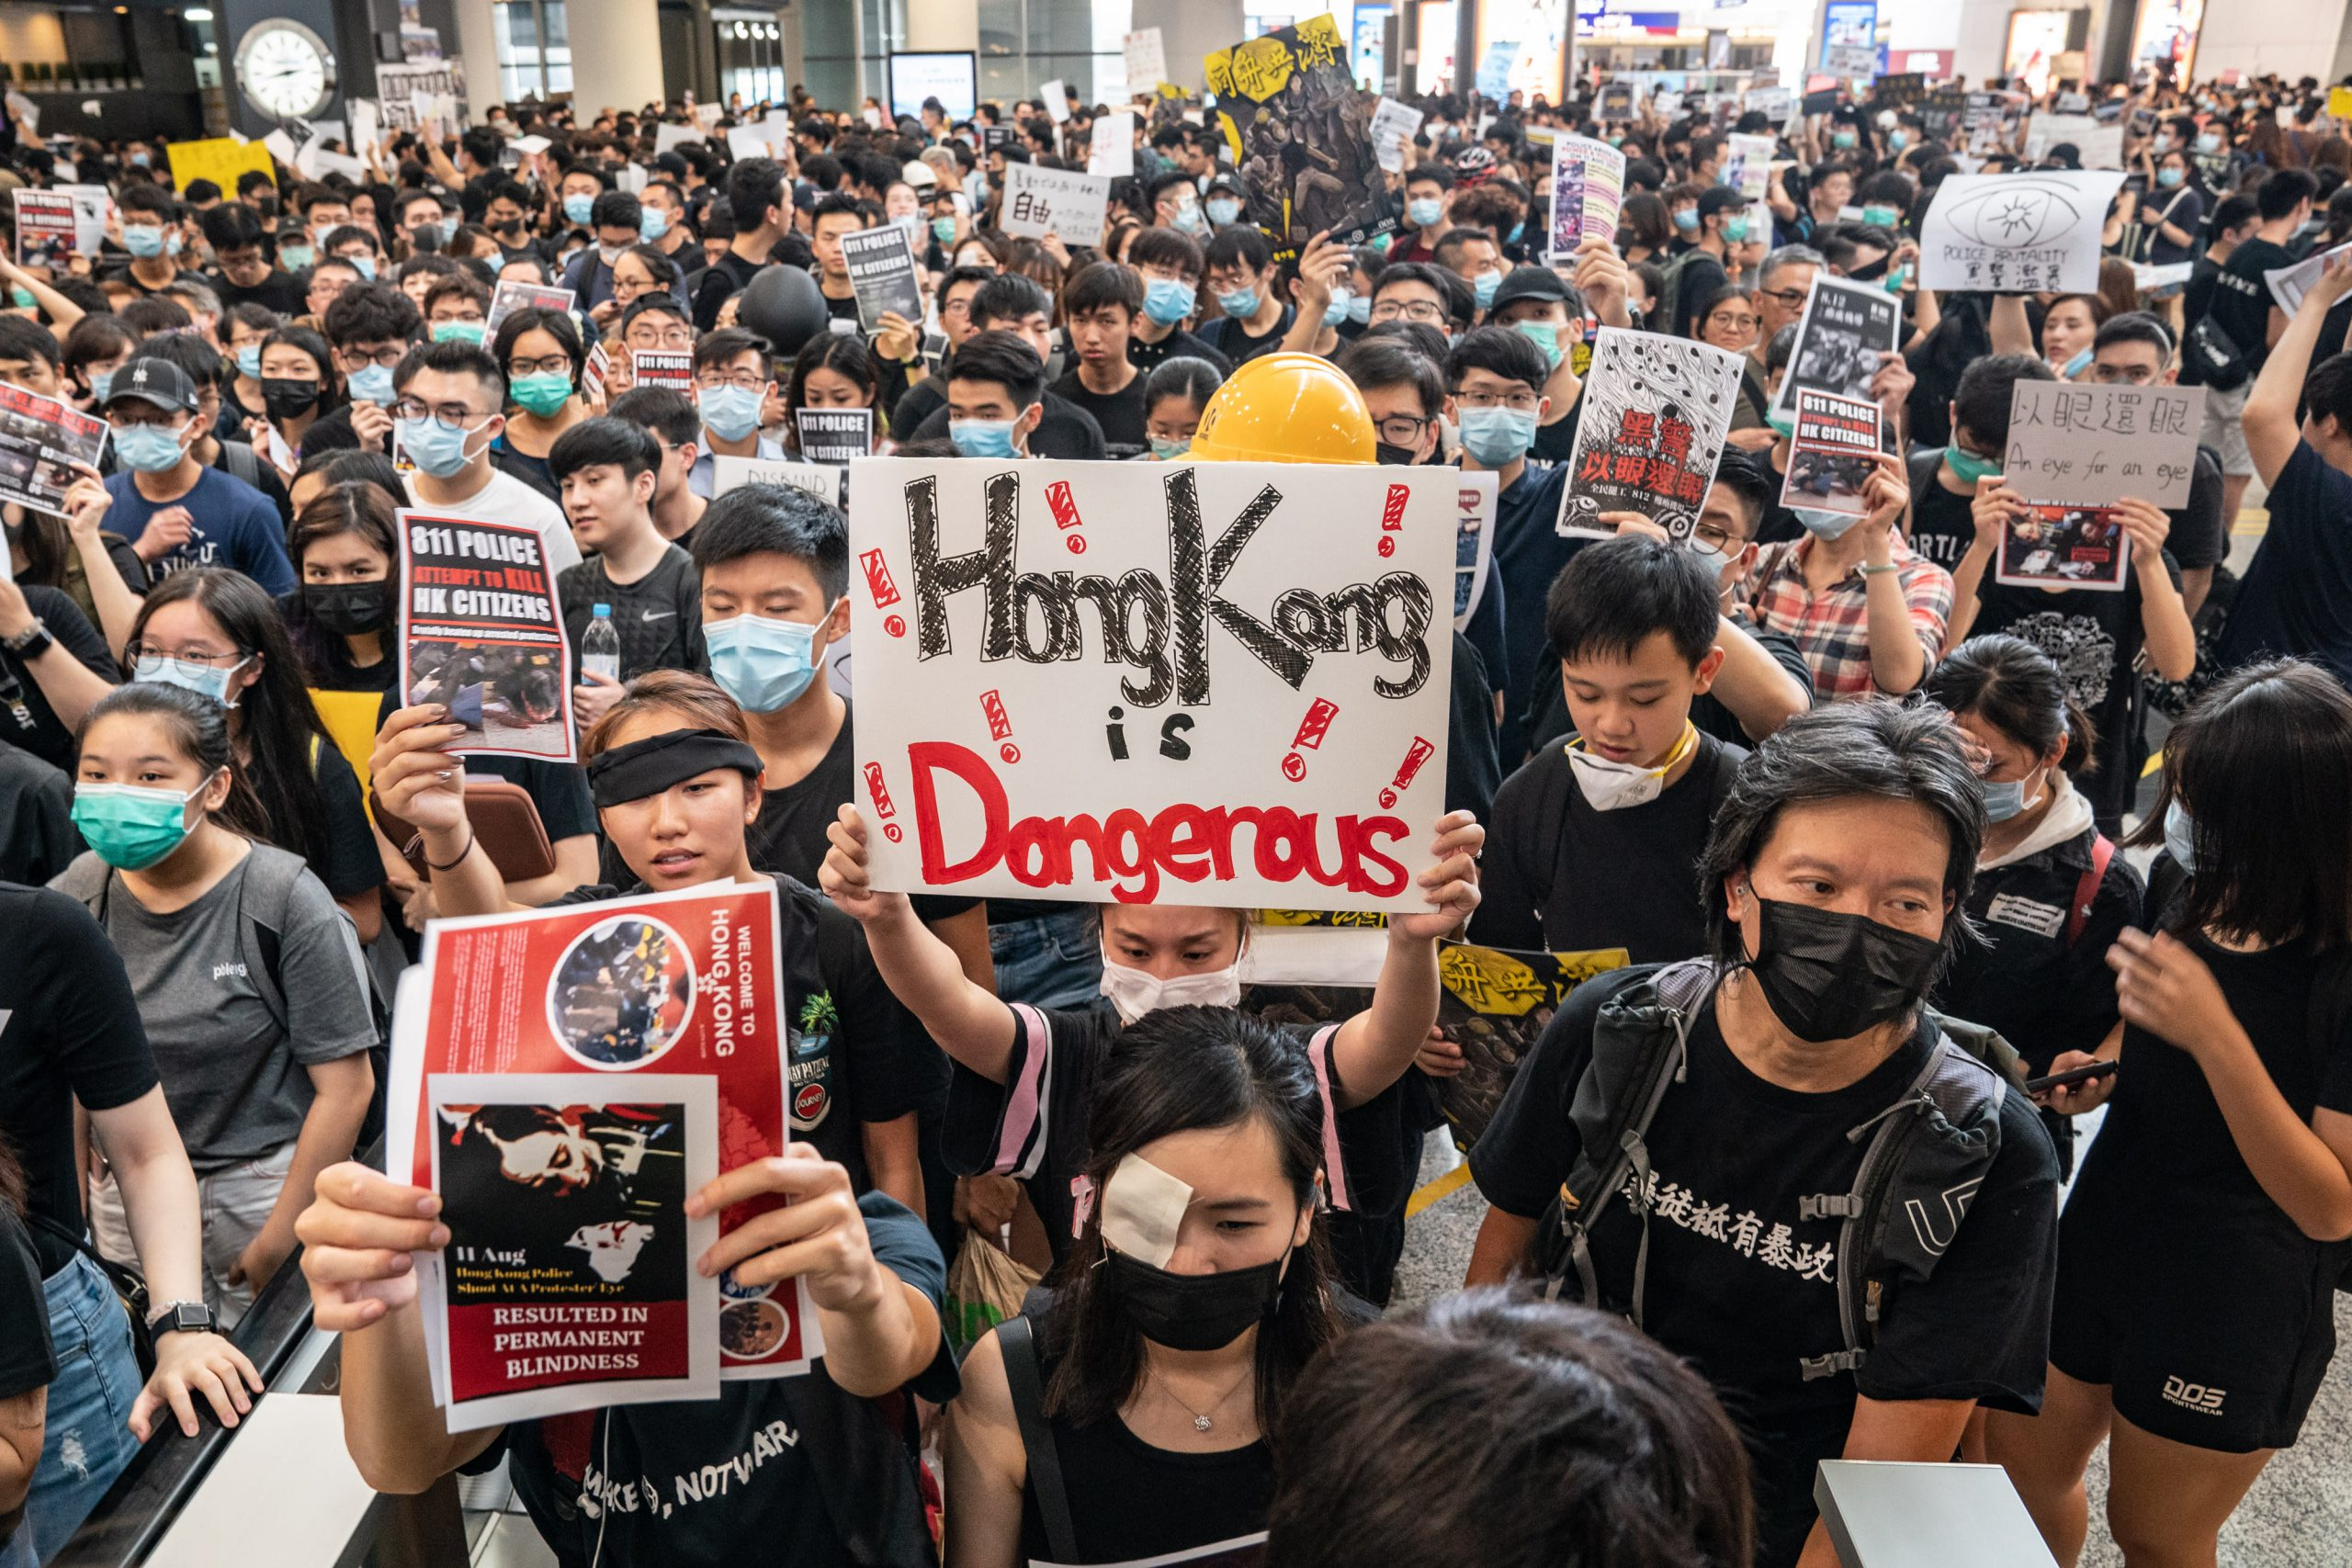 5 charts show how protests in Hong Kong have affected the city's economy and stock market